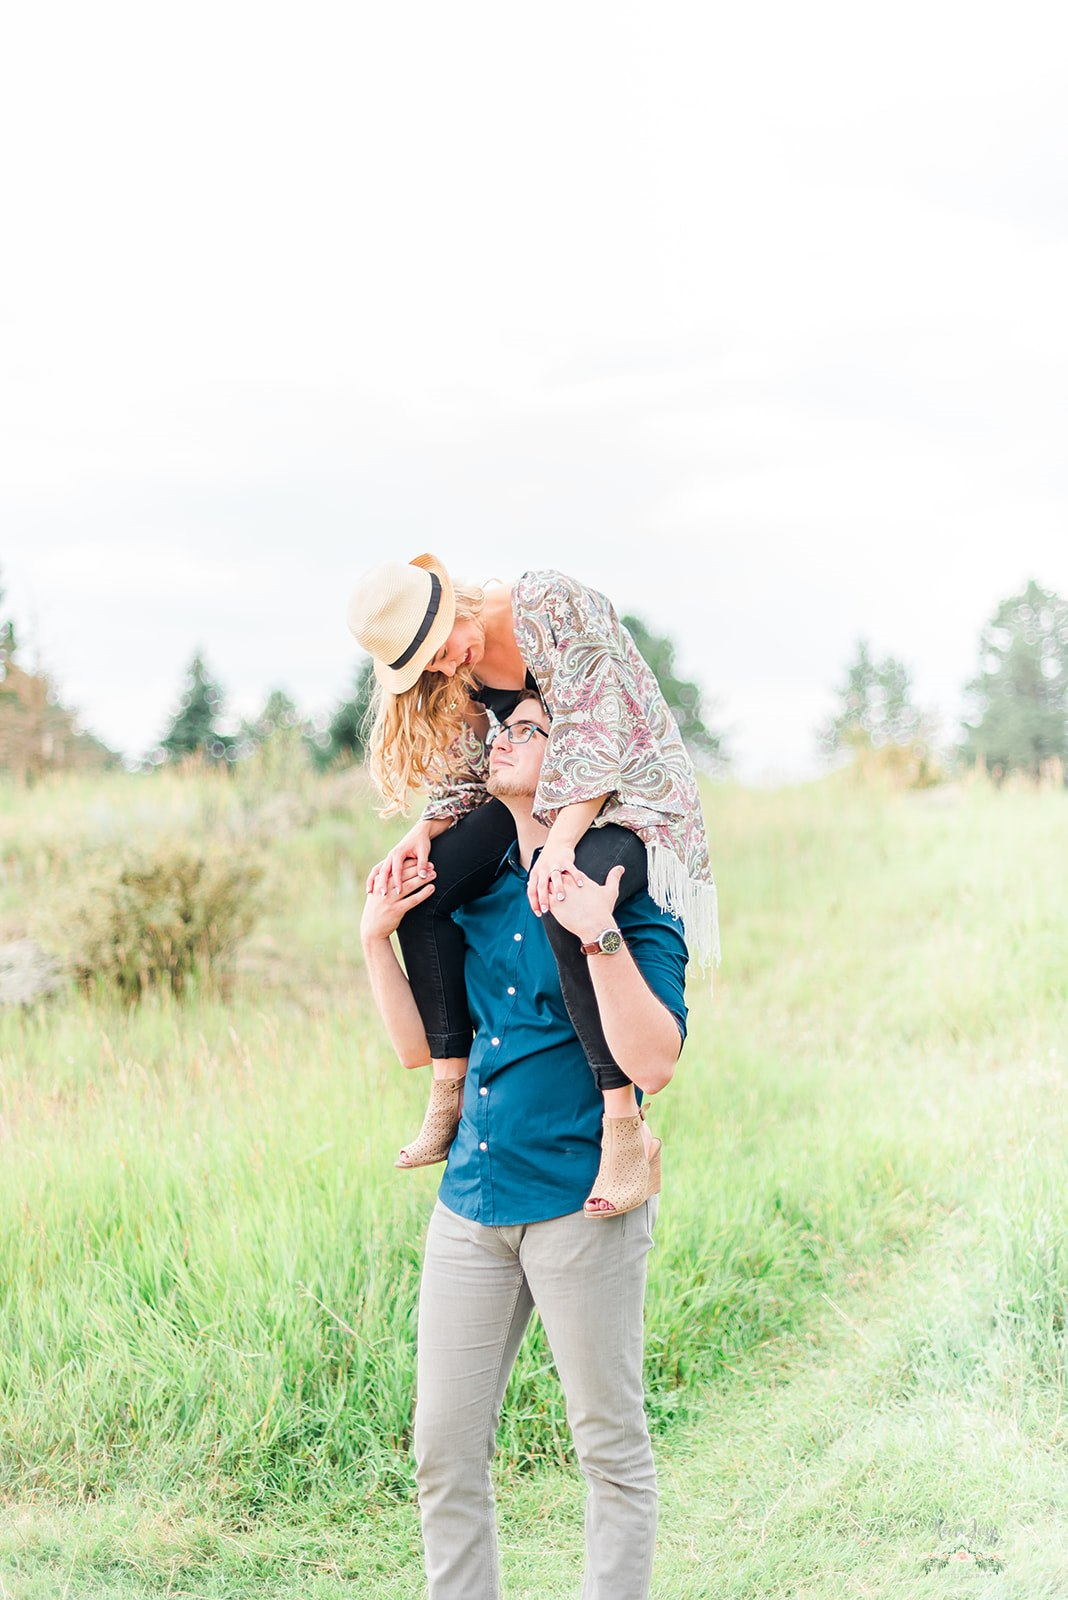 best engagement poses, must have engagement photos, fun engagement photos,